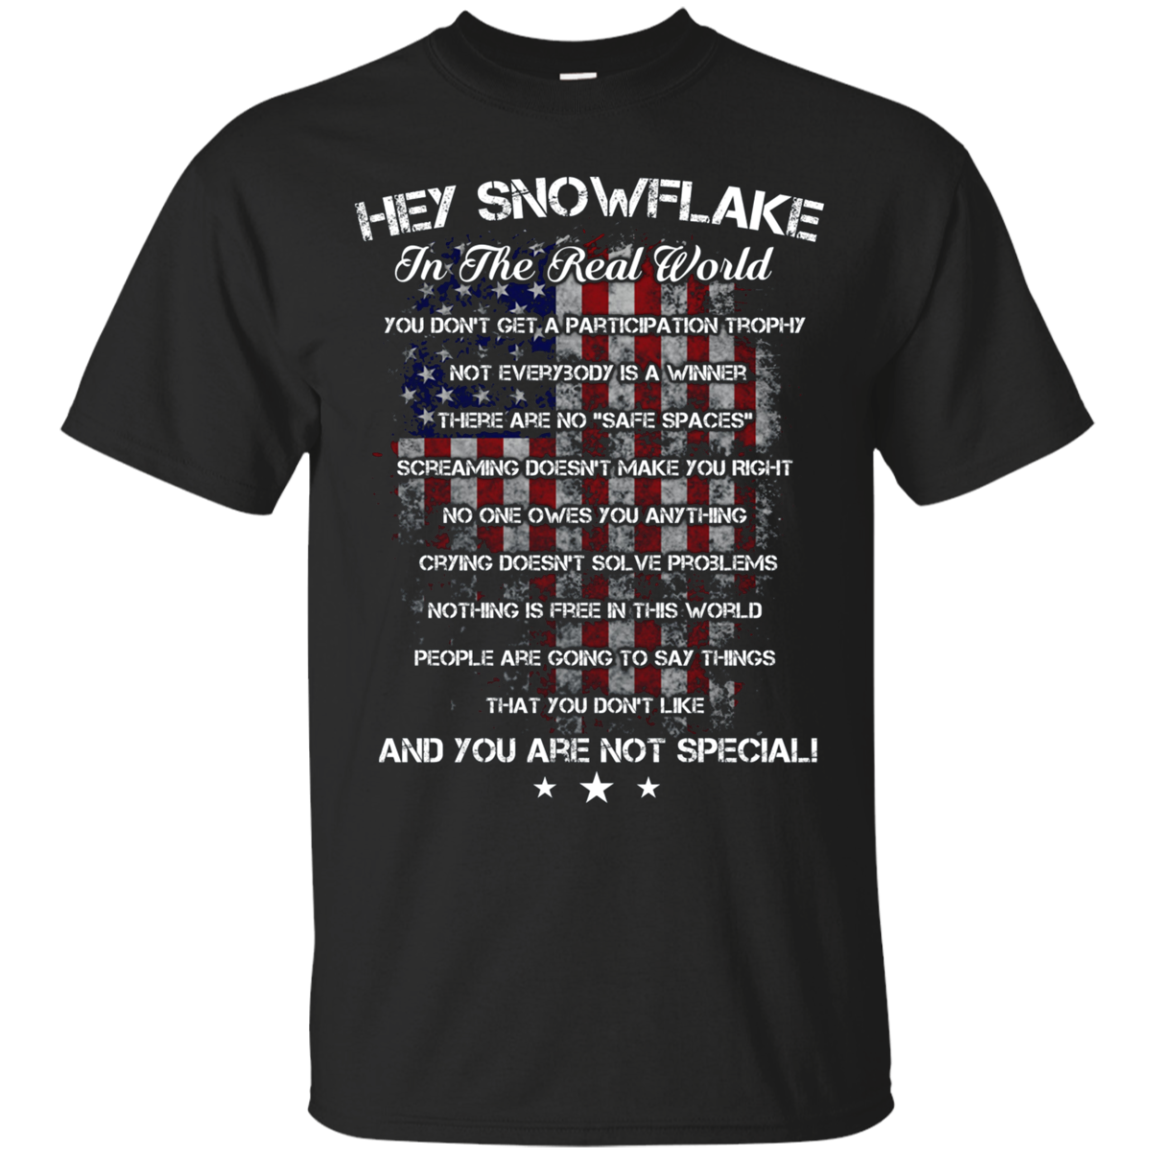 Hey Snowflake In The Real World Military Proud T-shirt